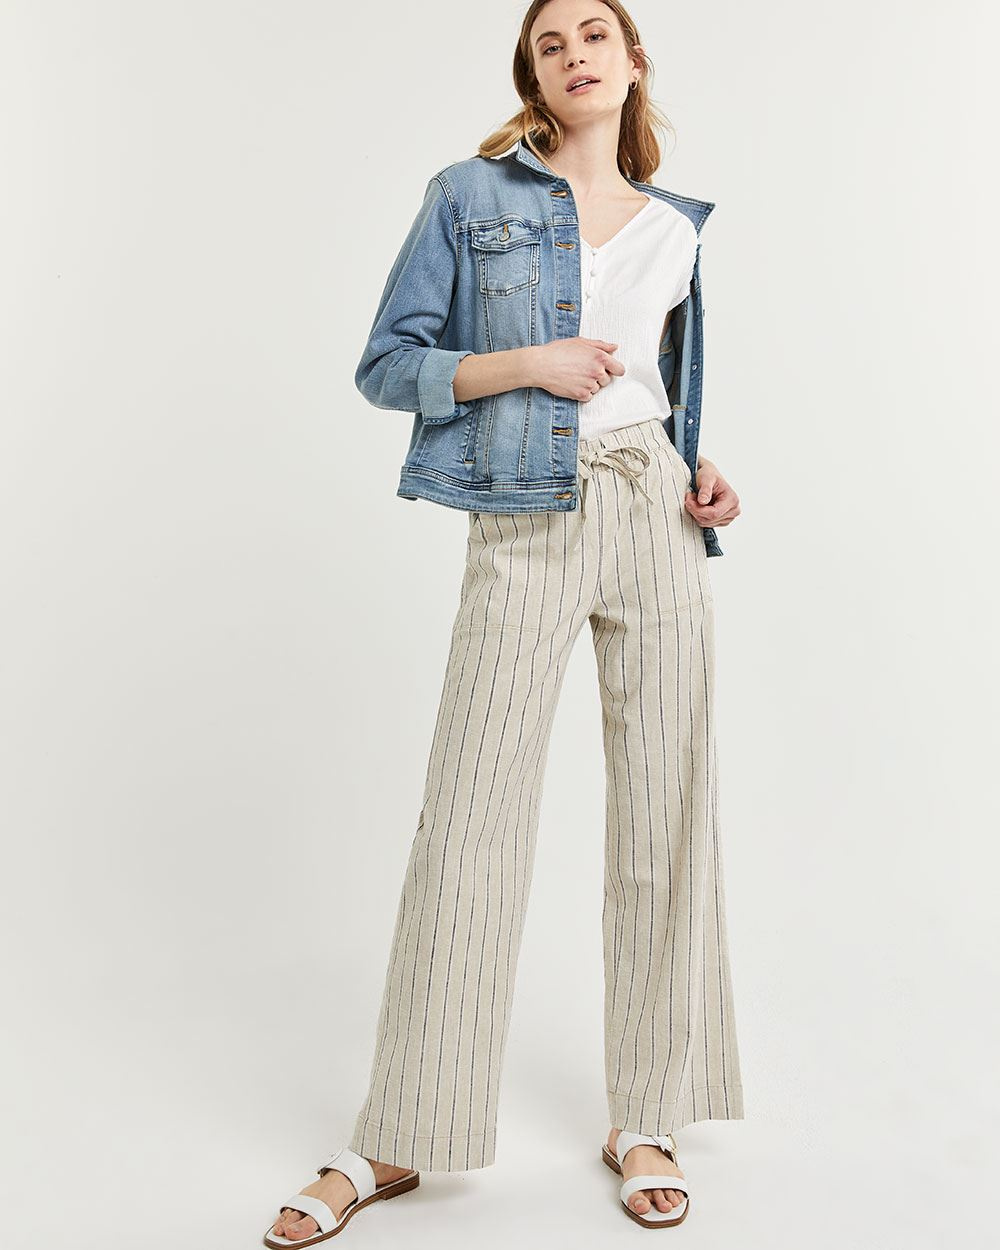 Linen-Blend Wide Leg Striped Pants with Drawstring